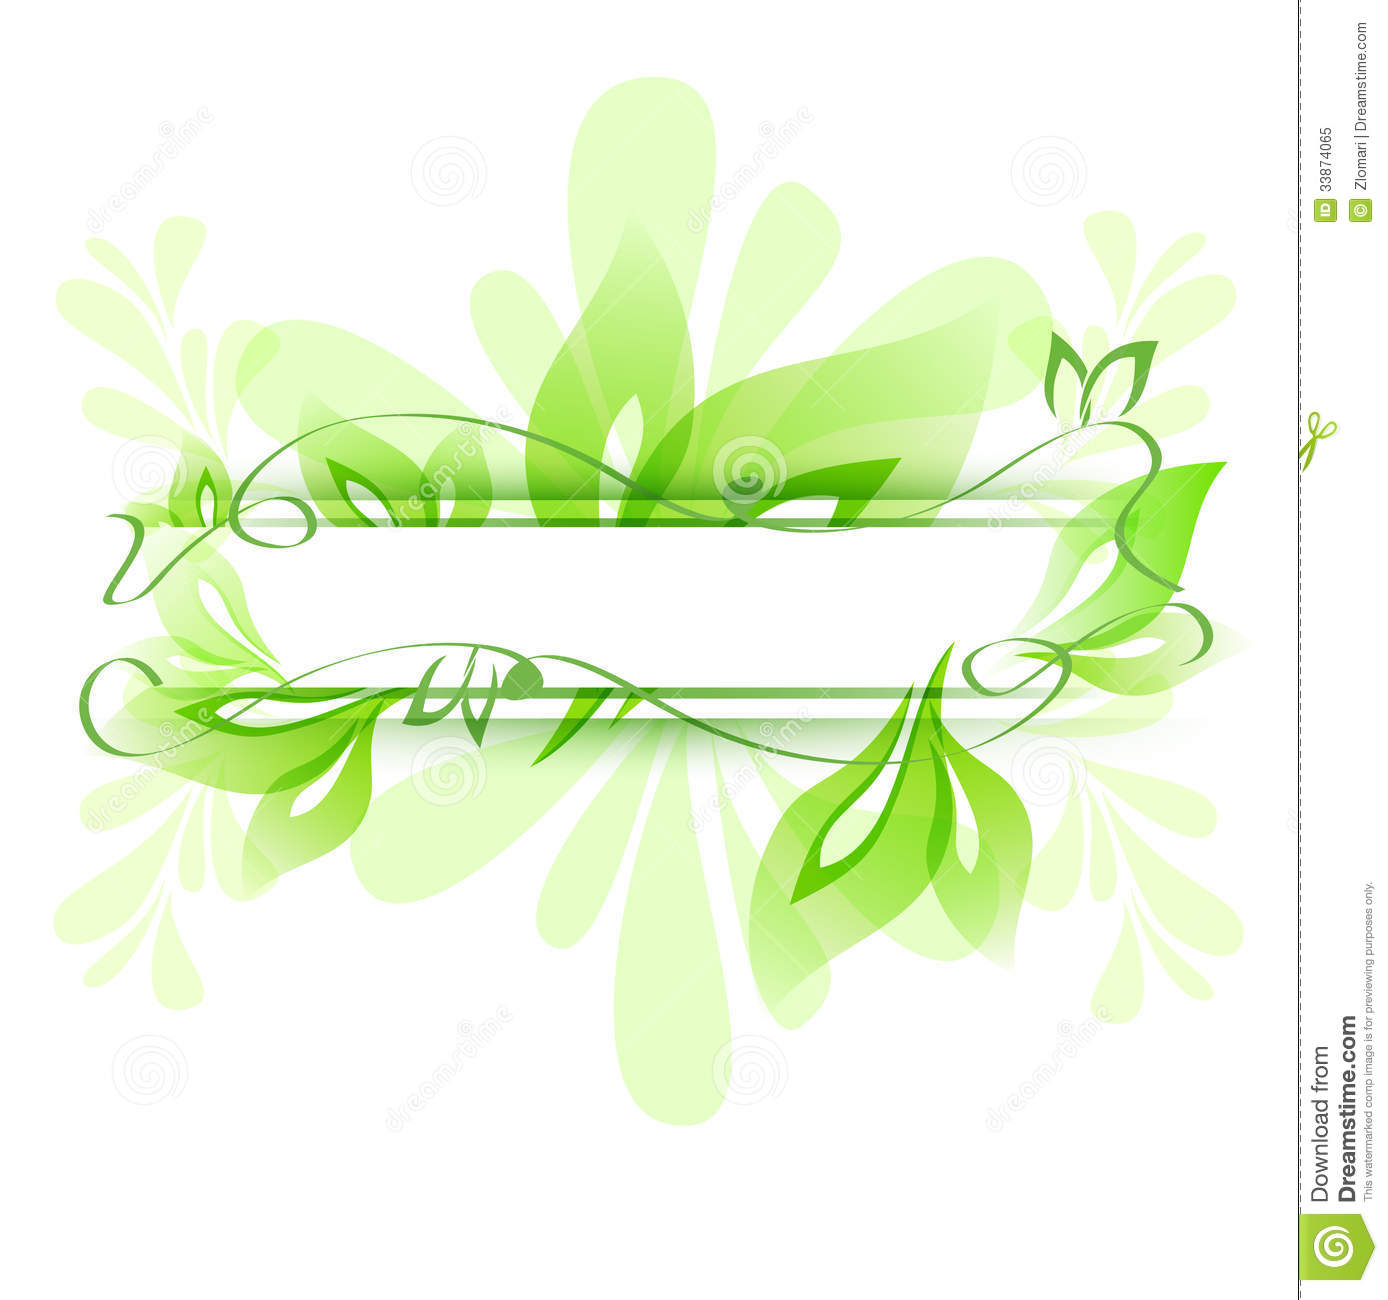 Abstract Flower Background With Decoration Elements For: Abstract Green Background Stock Vector. Illustration Of